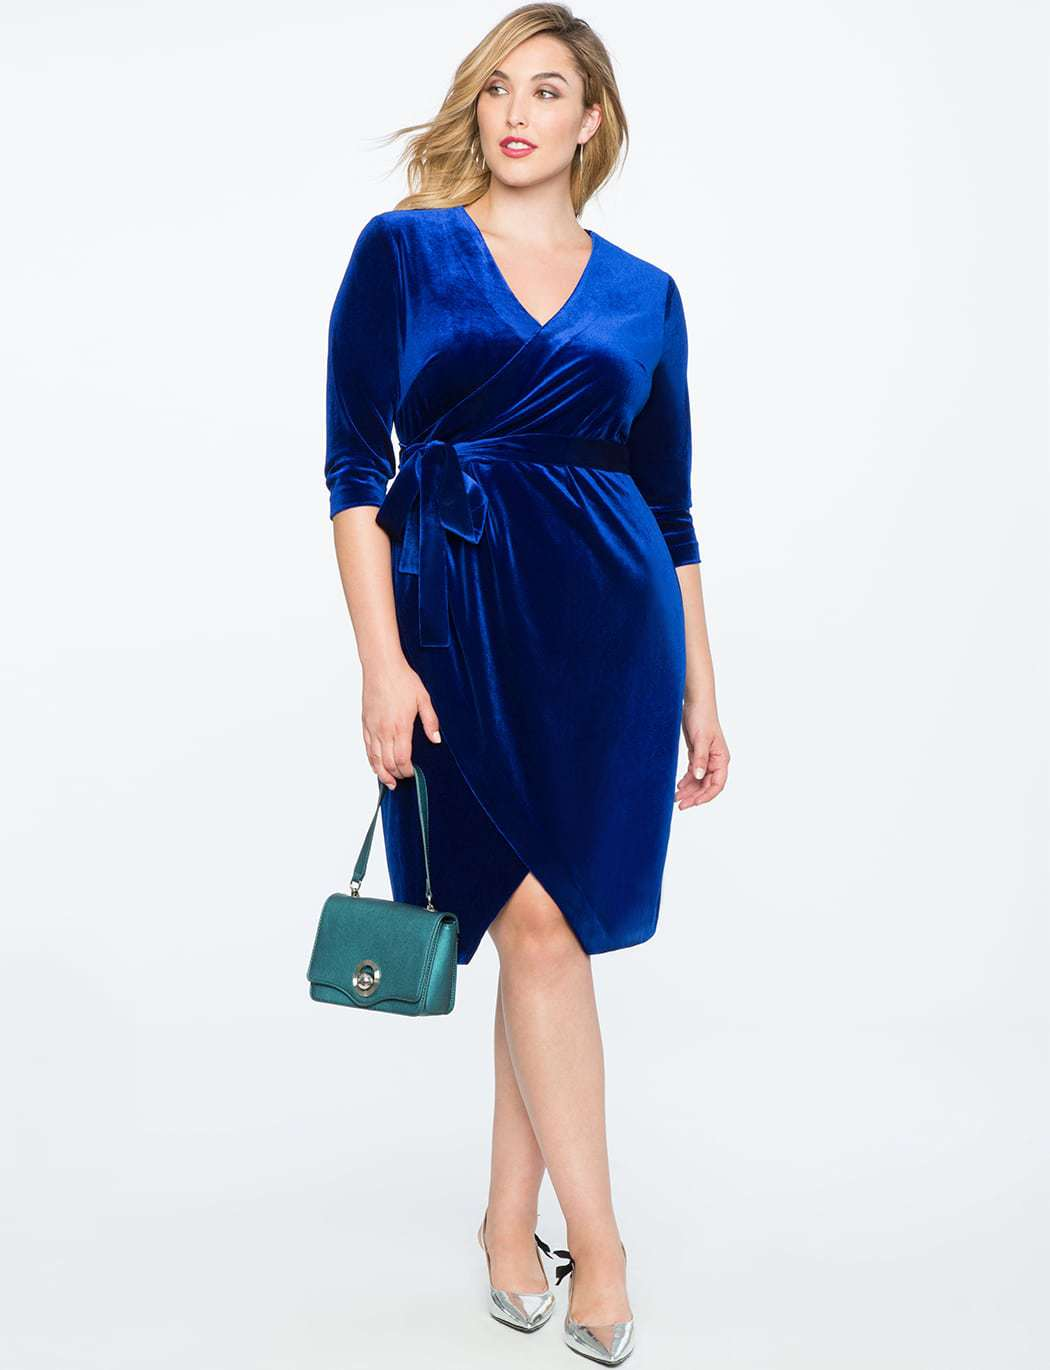 blue velvet plus size wrap dress from ELOQUII